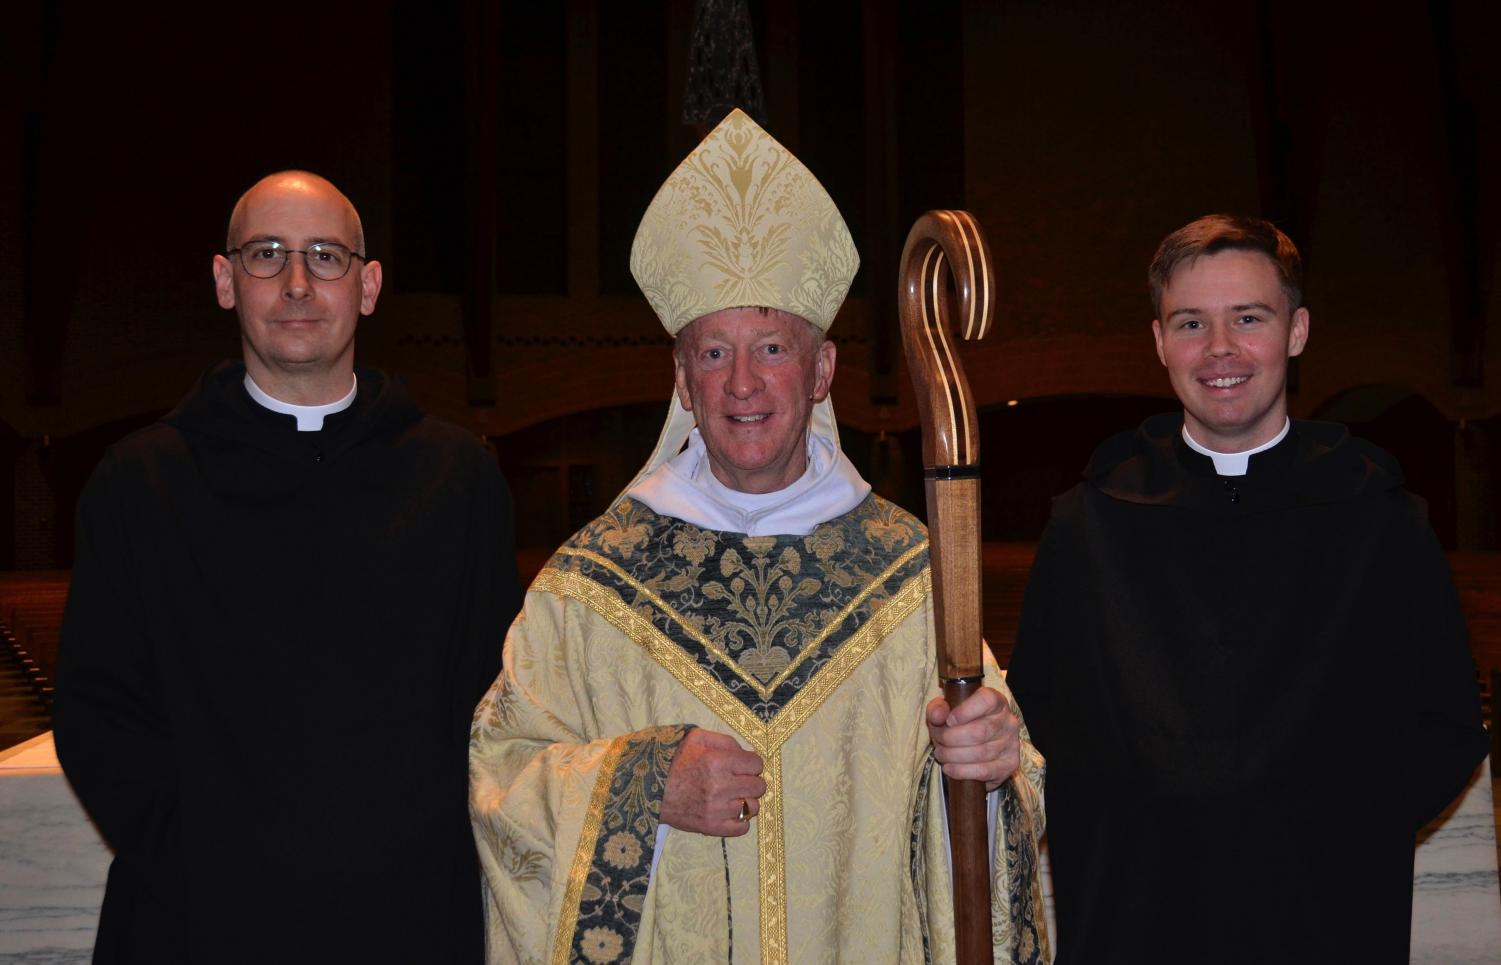 From left to right, Brother Dunstan, Abbot Mark, and Brother Titus at the vow ceremony on January 15.